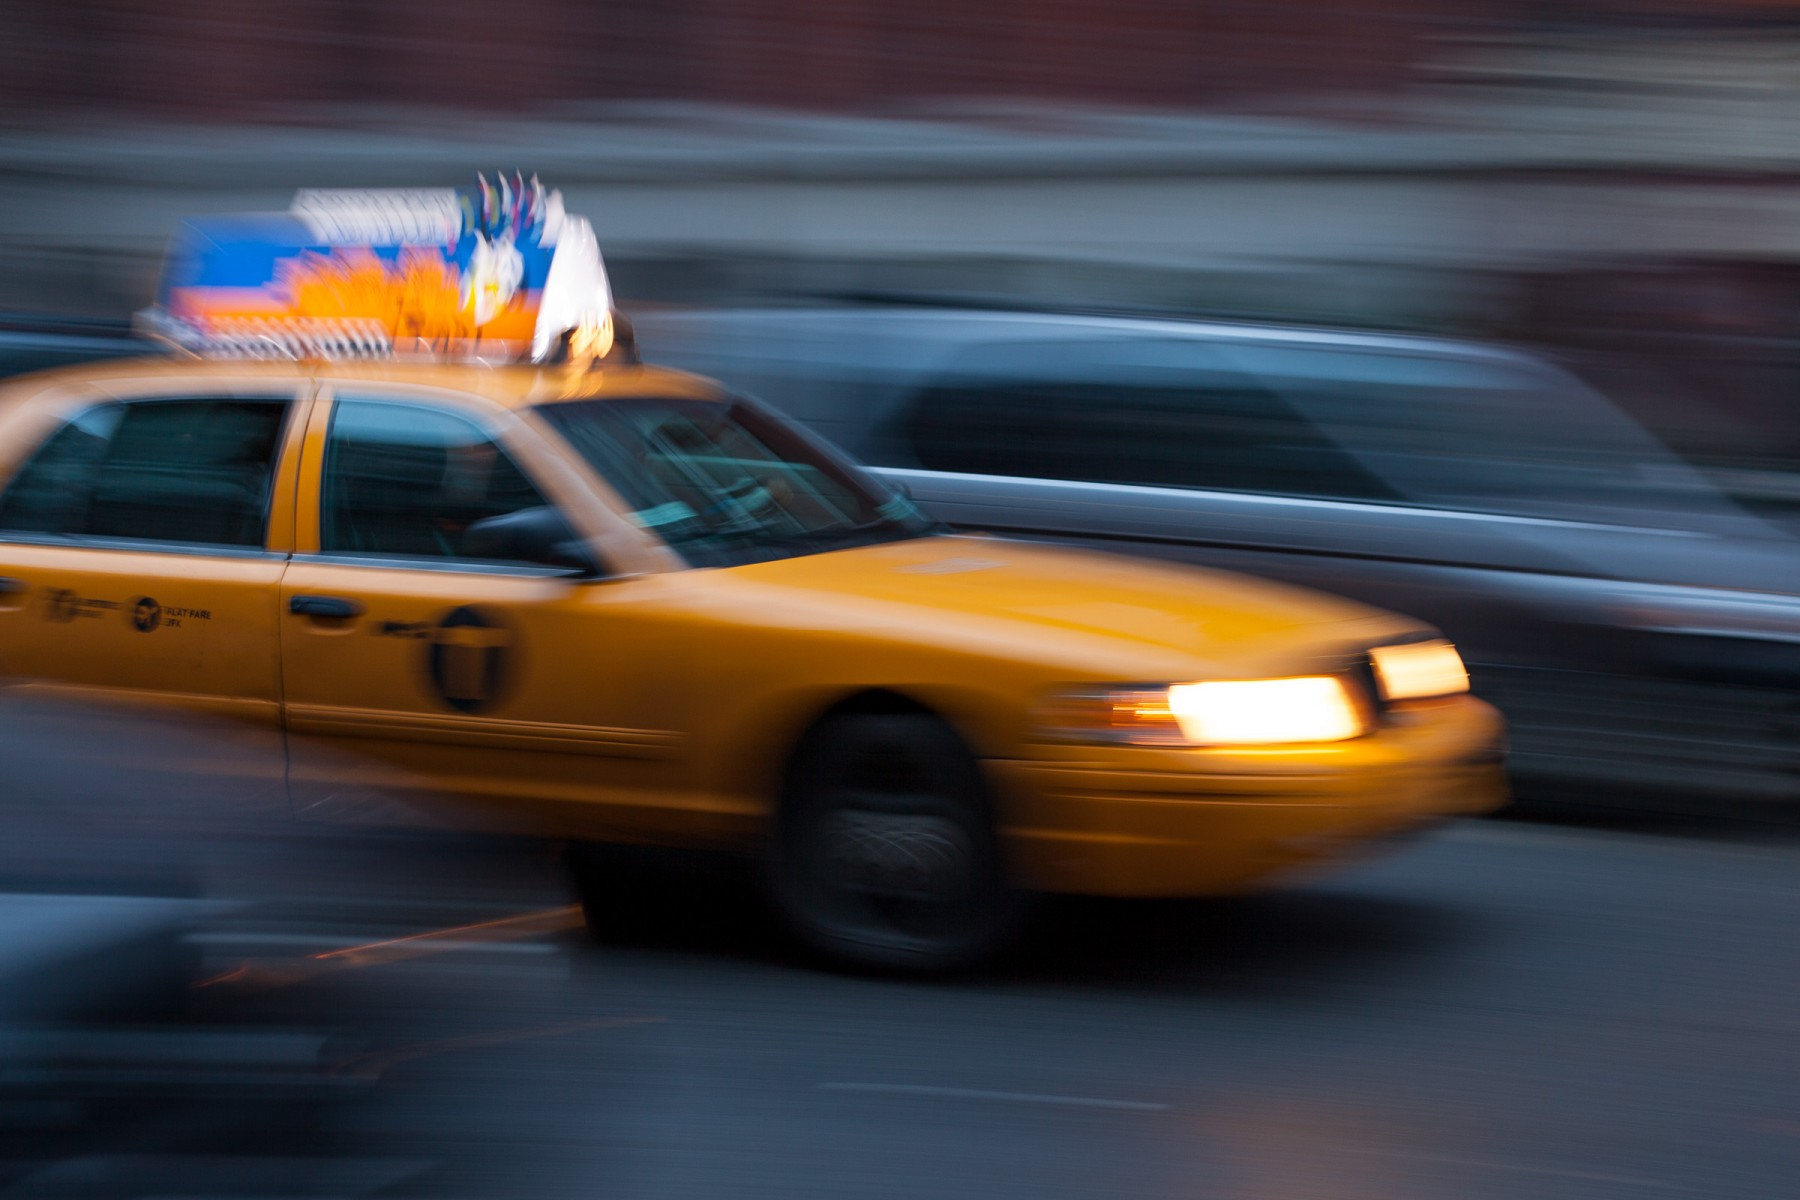 A yellow cab weaves through traffic in New York city.